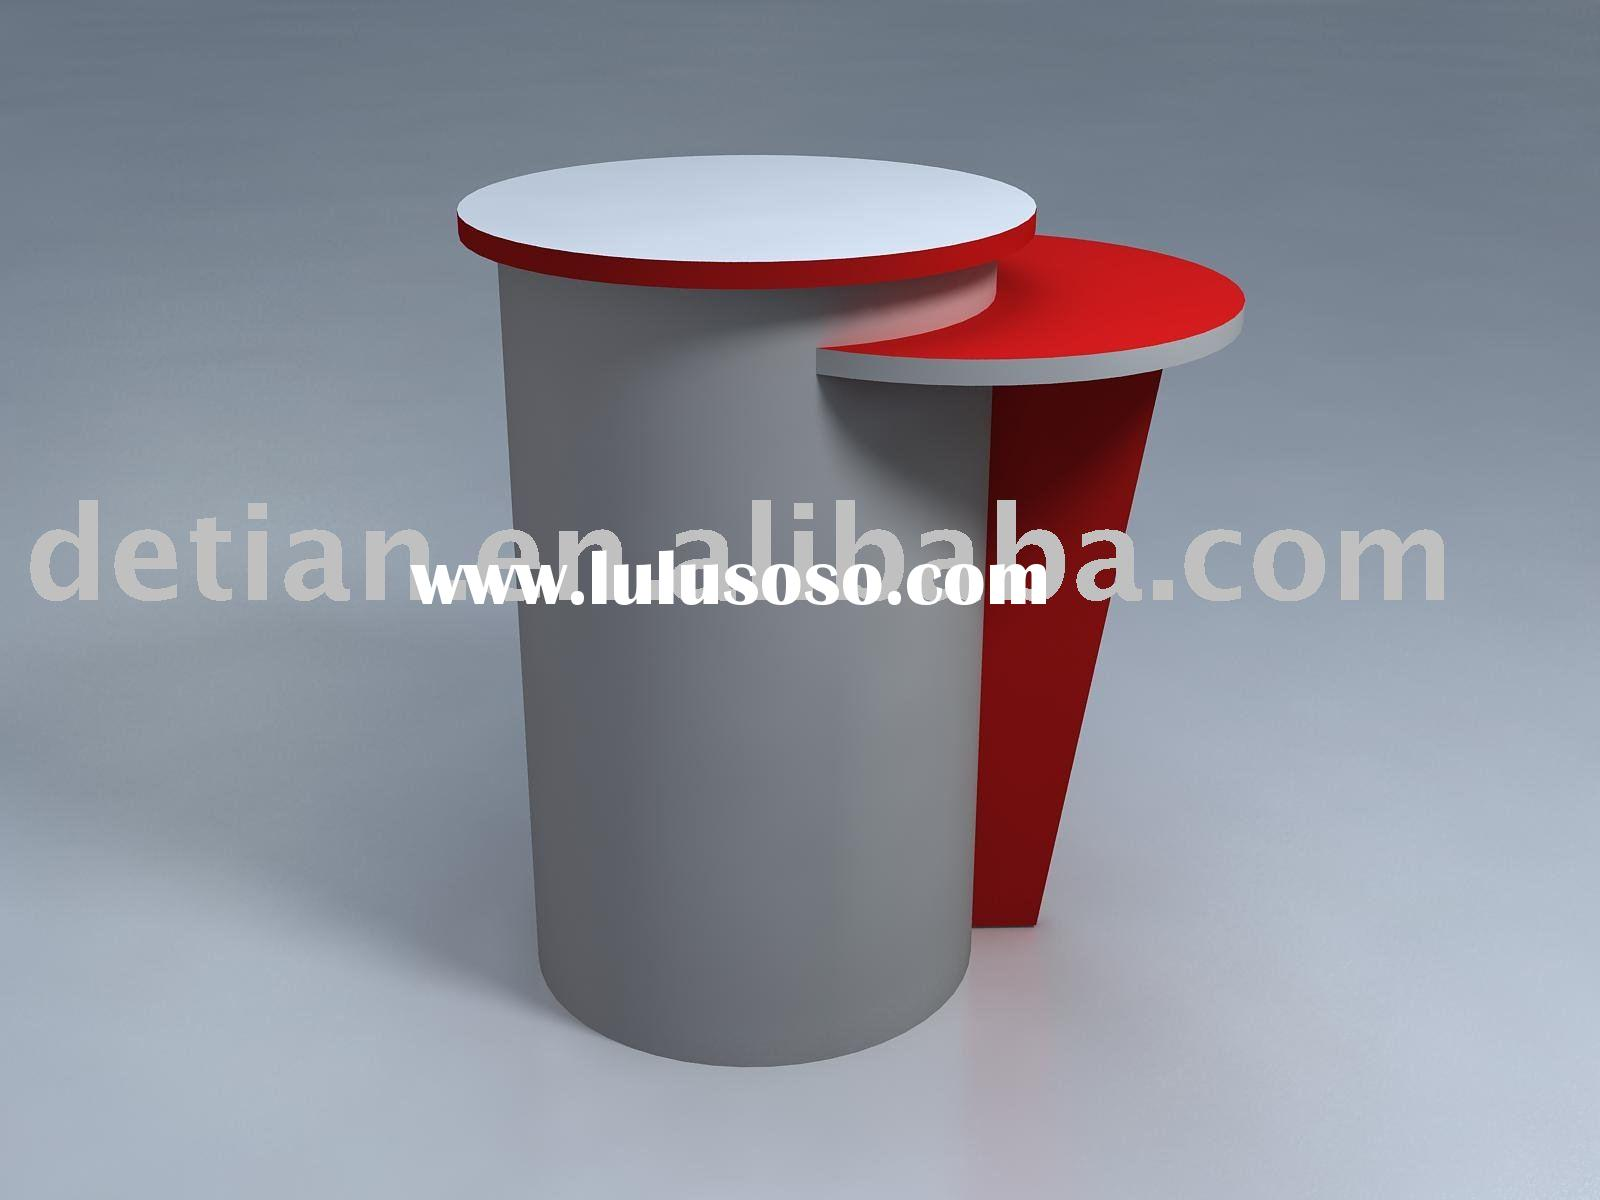 Exhibition Stand For Sale : Exhibition stand promotion table for sale price china